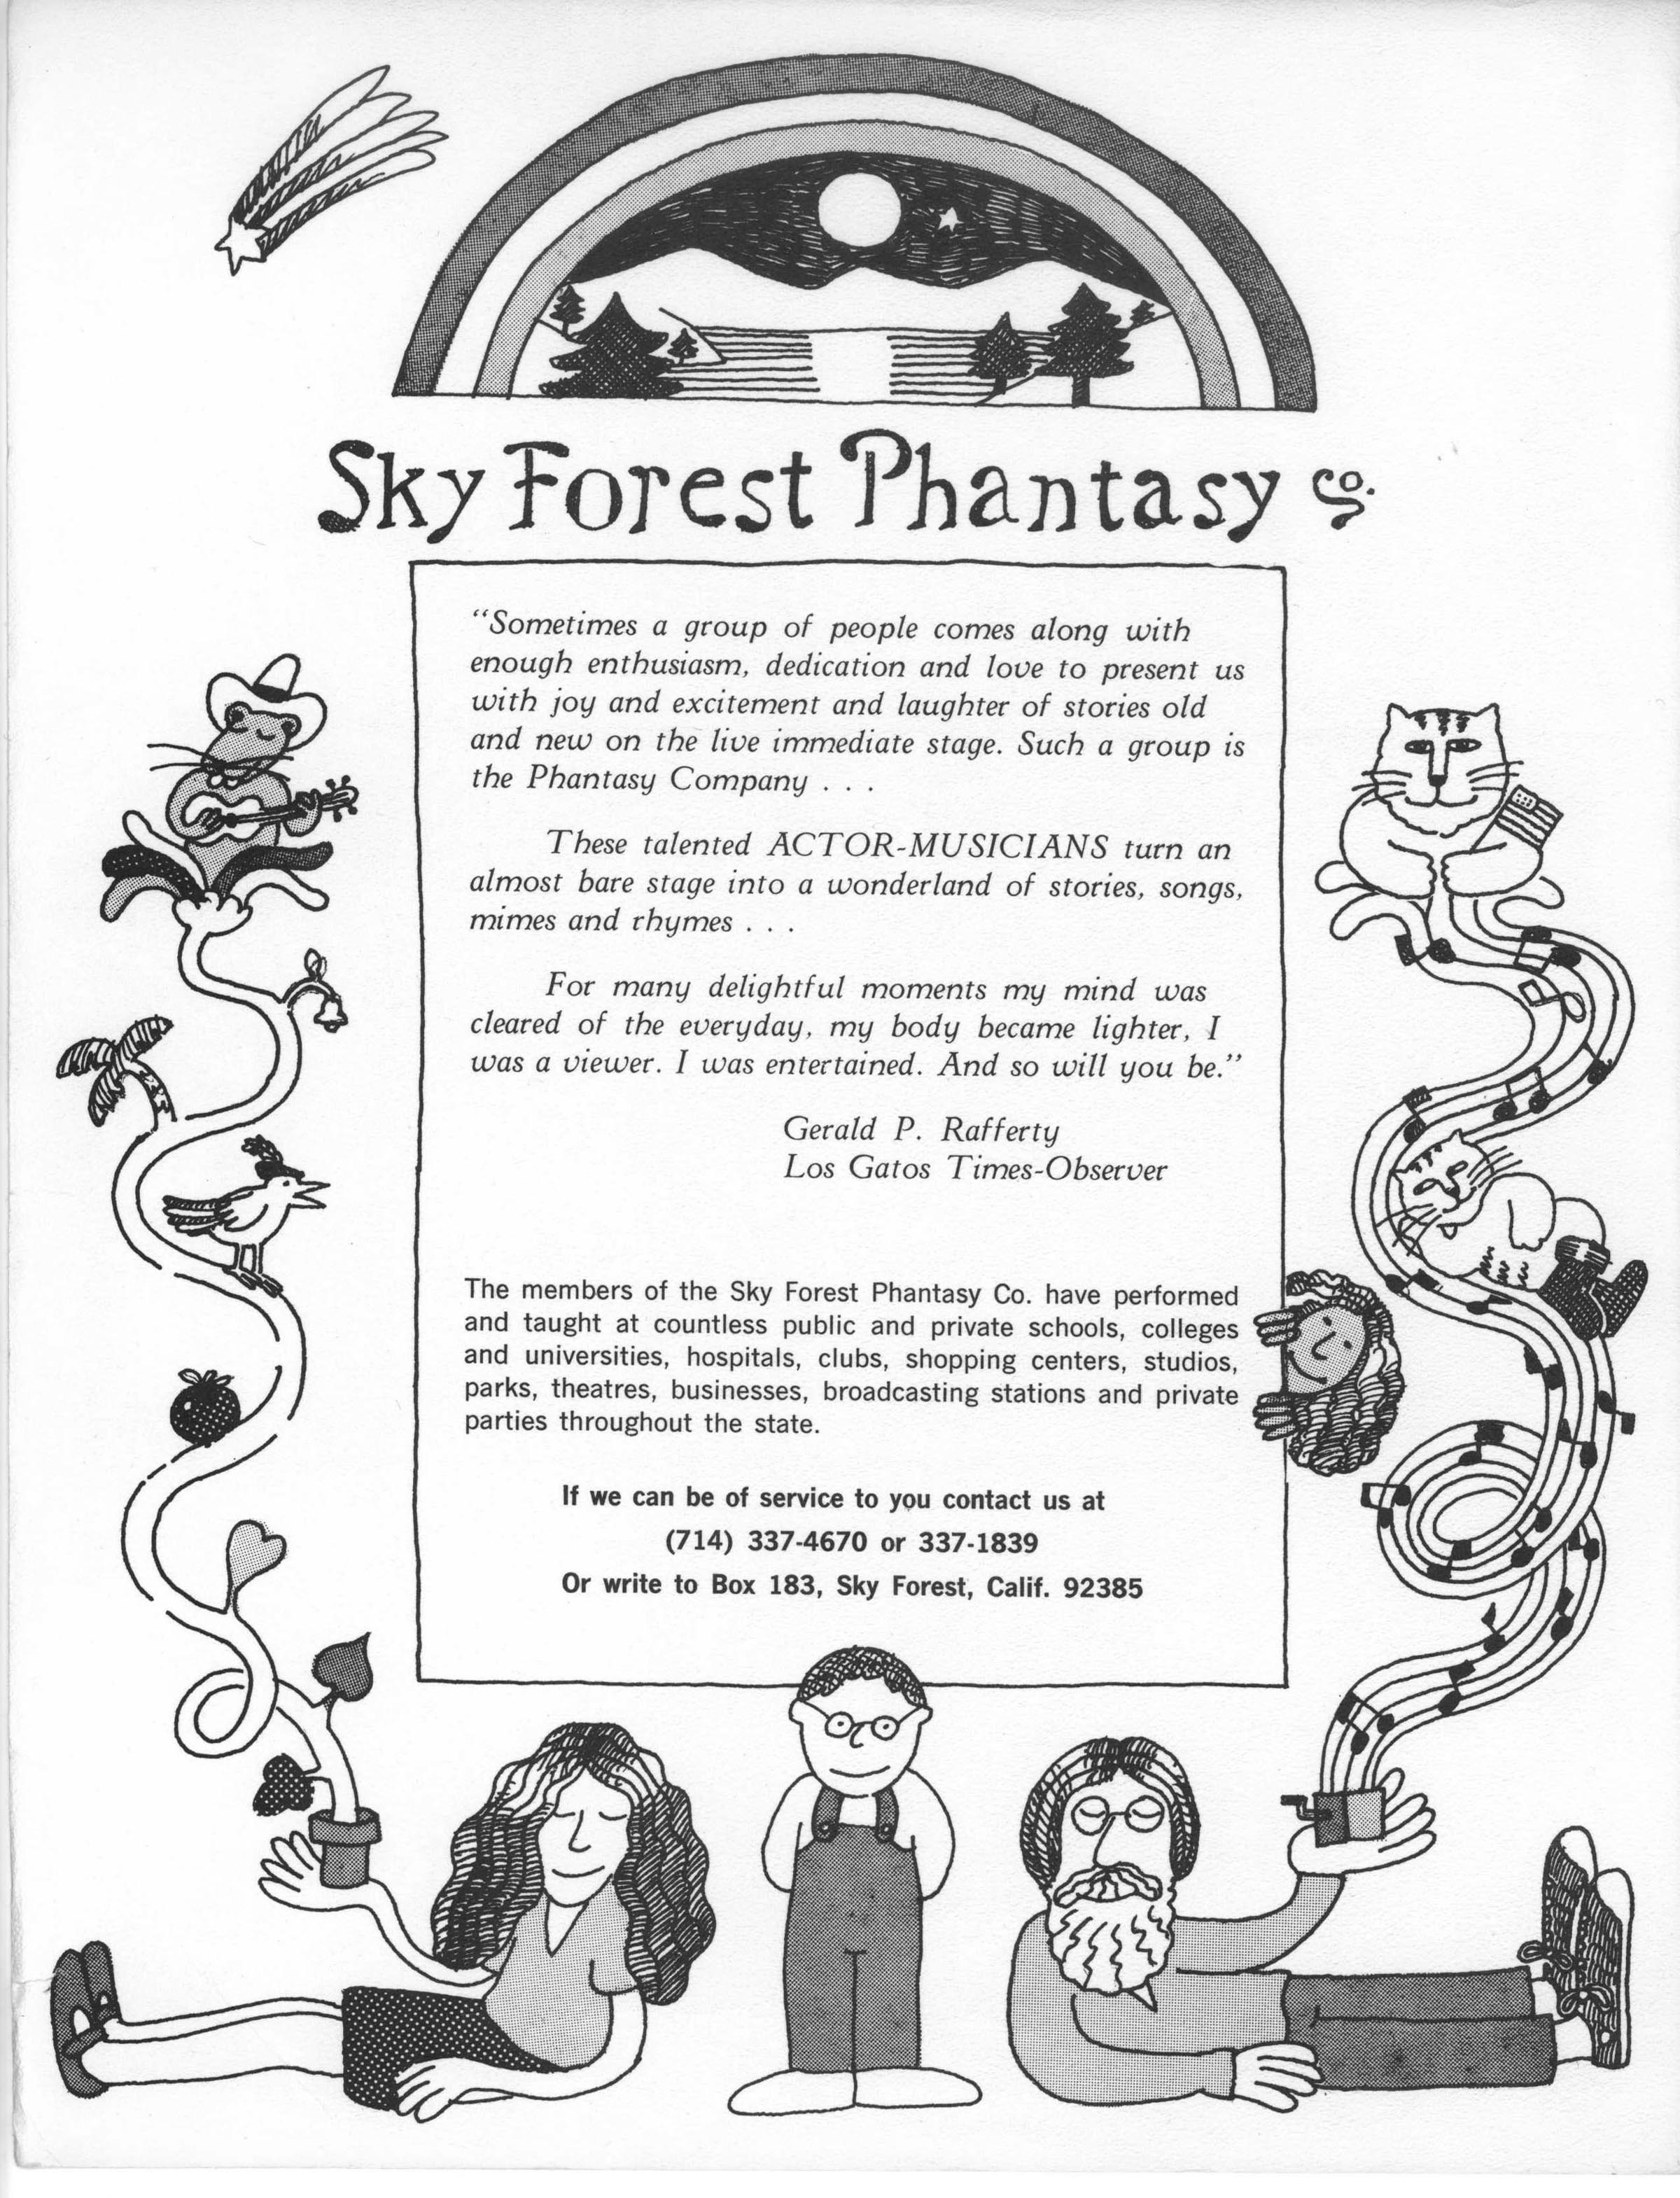 Sky-Forest-Phantasy-Flyer-1976